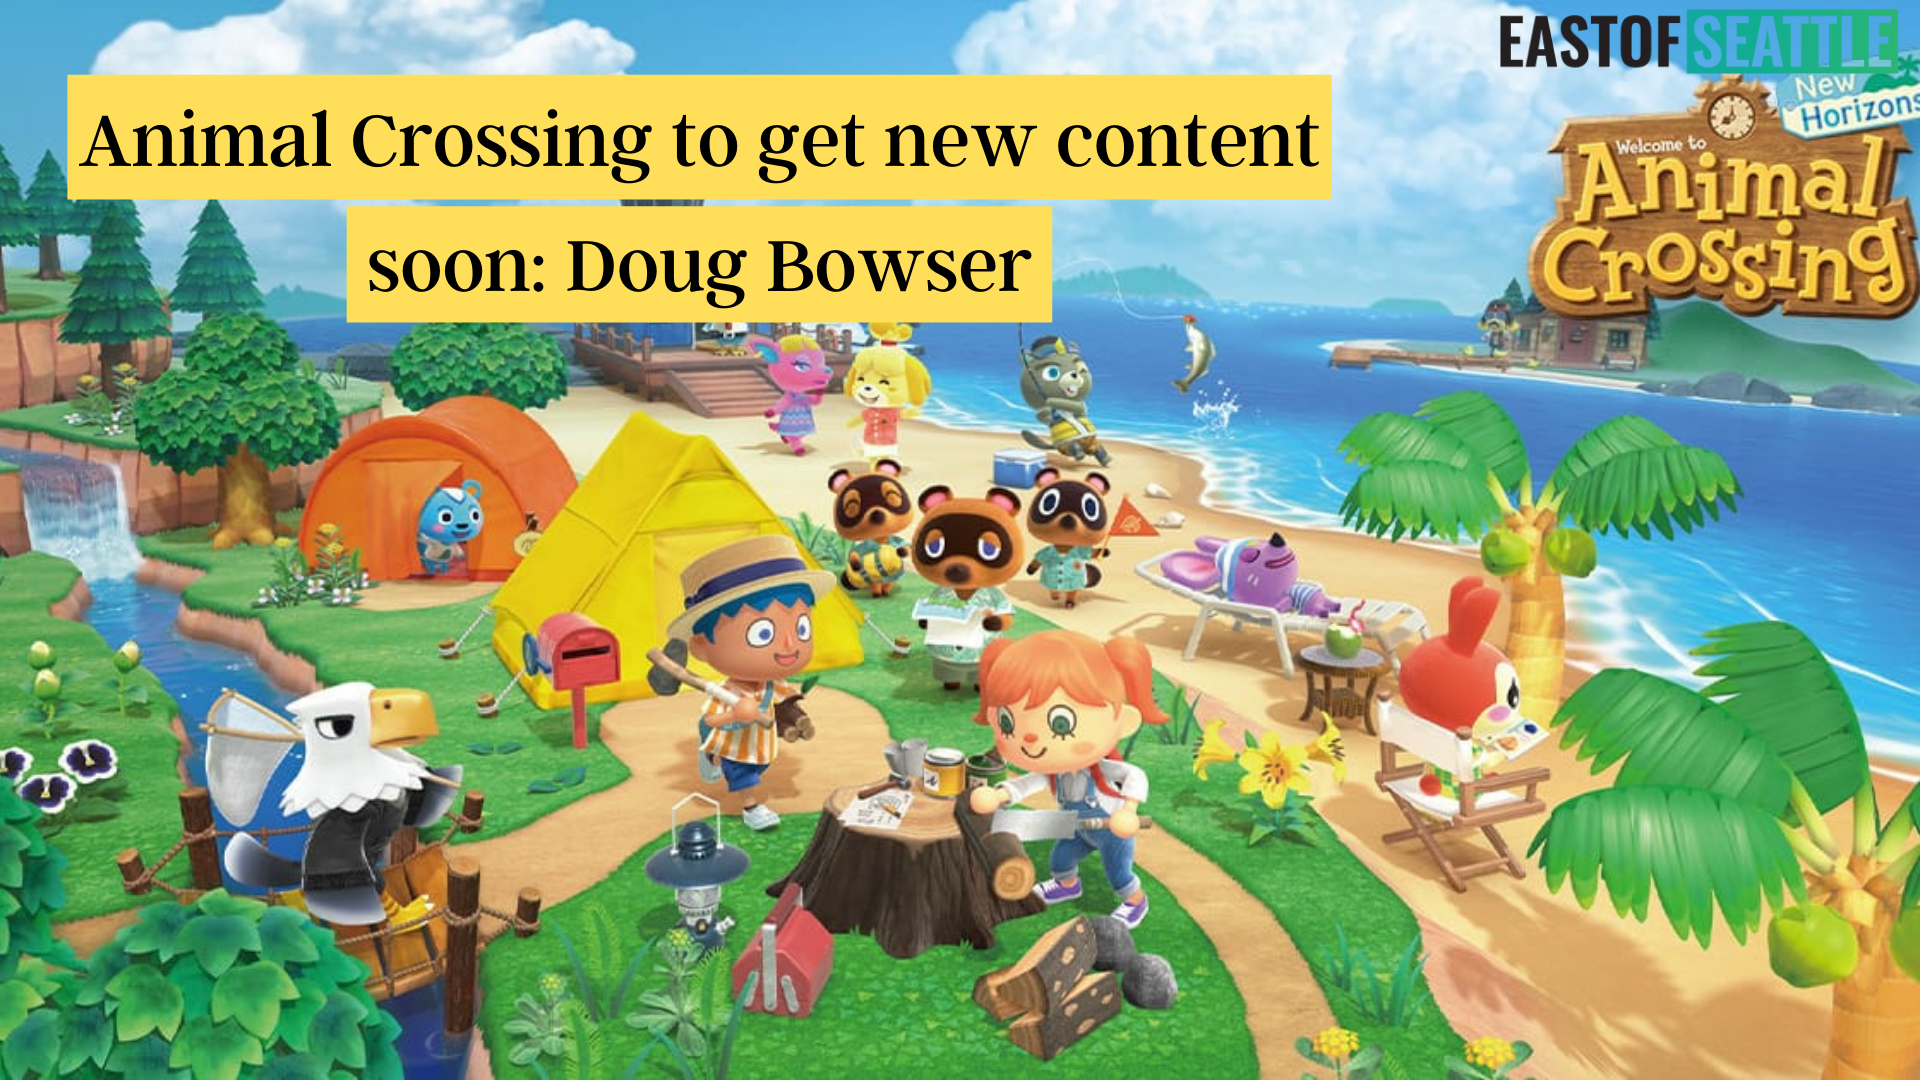 Animal Crossing to get new content soon: Doug Bowser